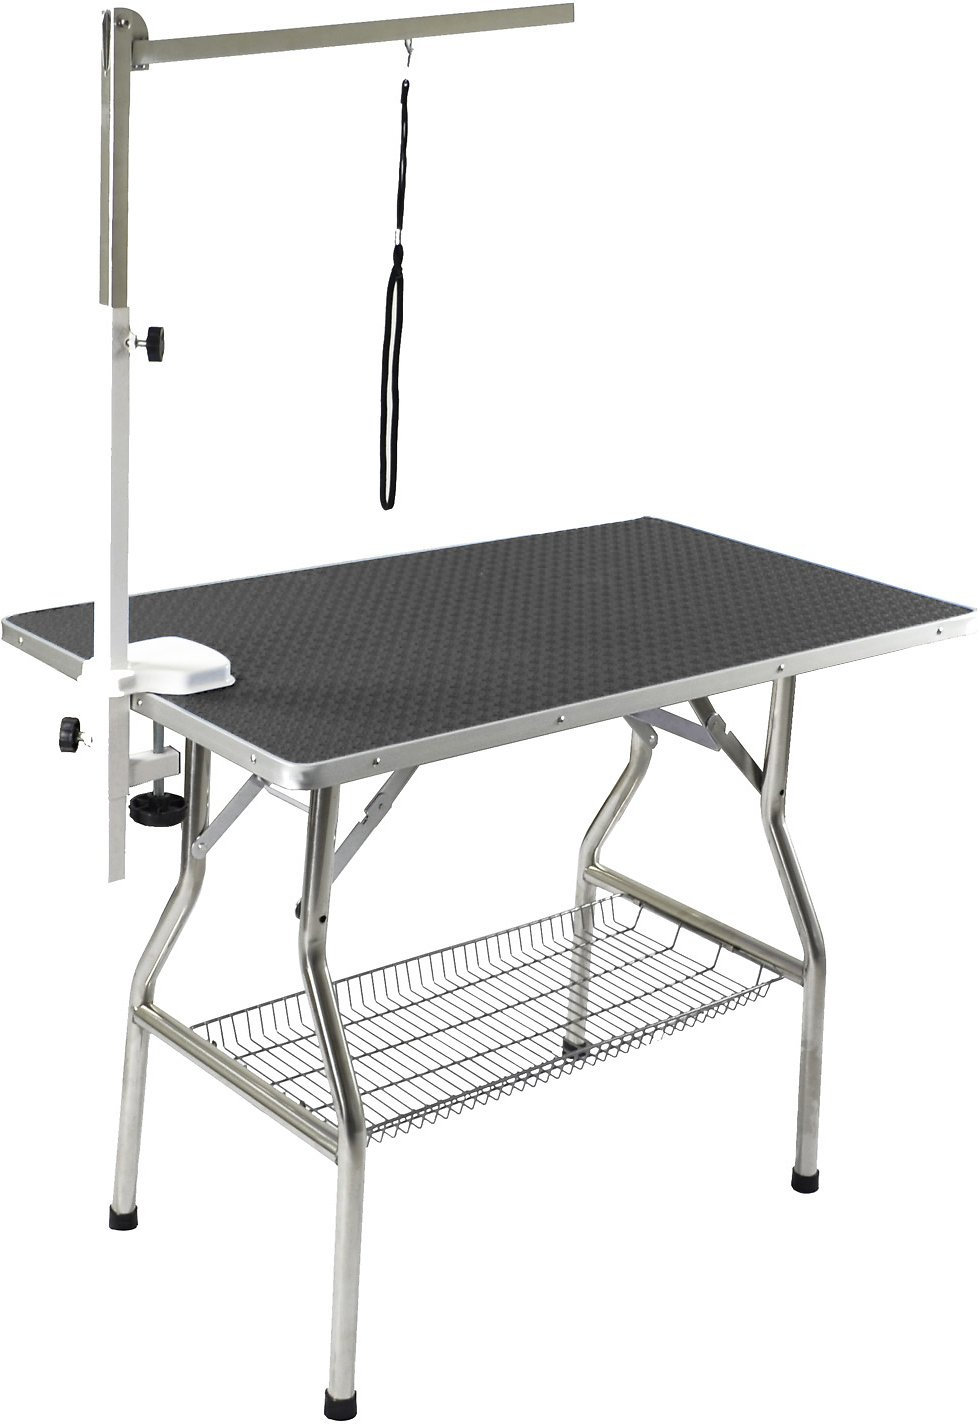 Brilliant Flying Pig Grooming Heavy Duty Dog Cat Grooming Table With Arm Medium Black Home Interior And Landscaping Ologienasavecom